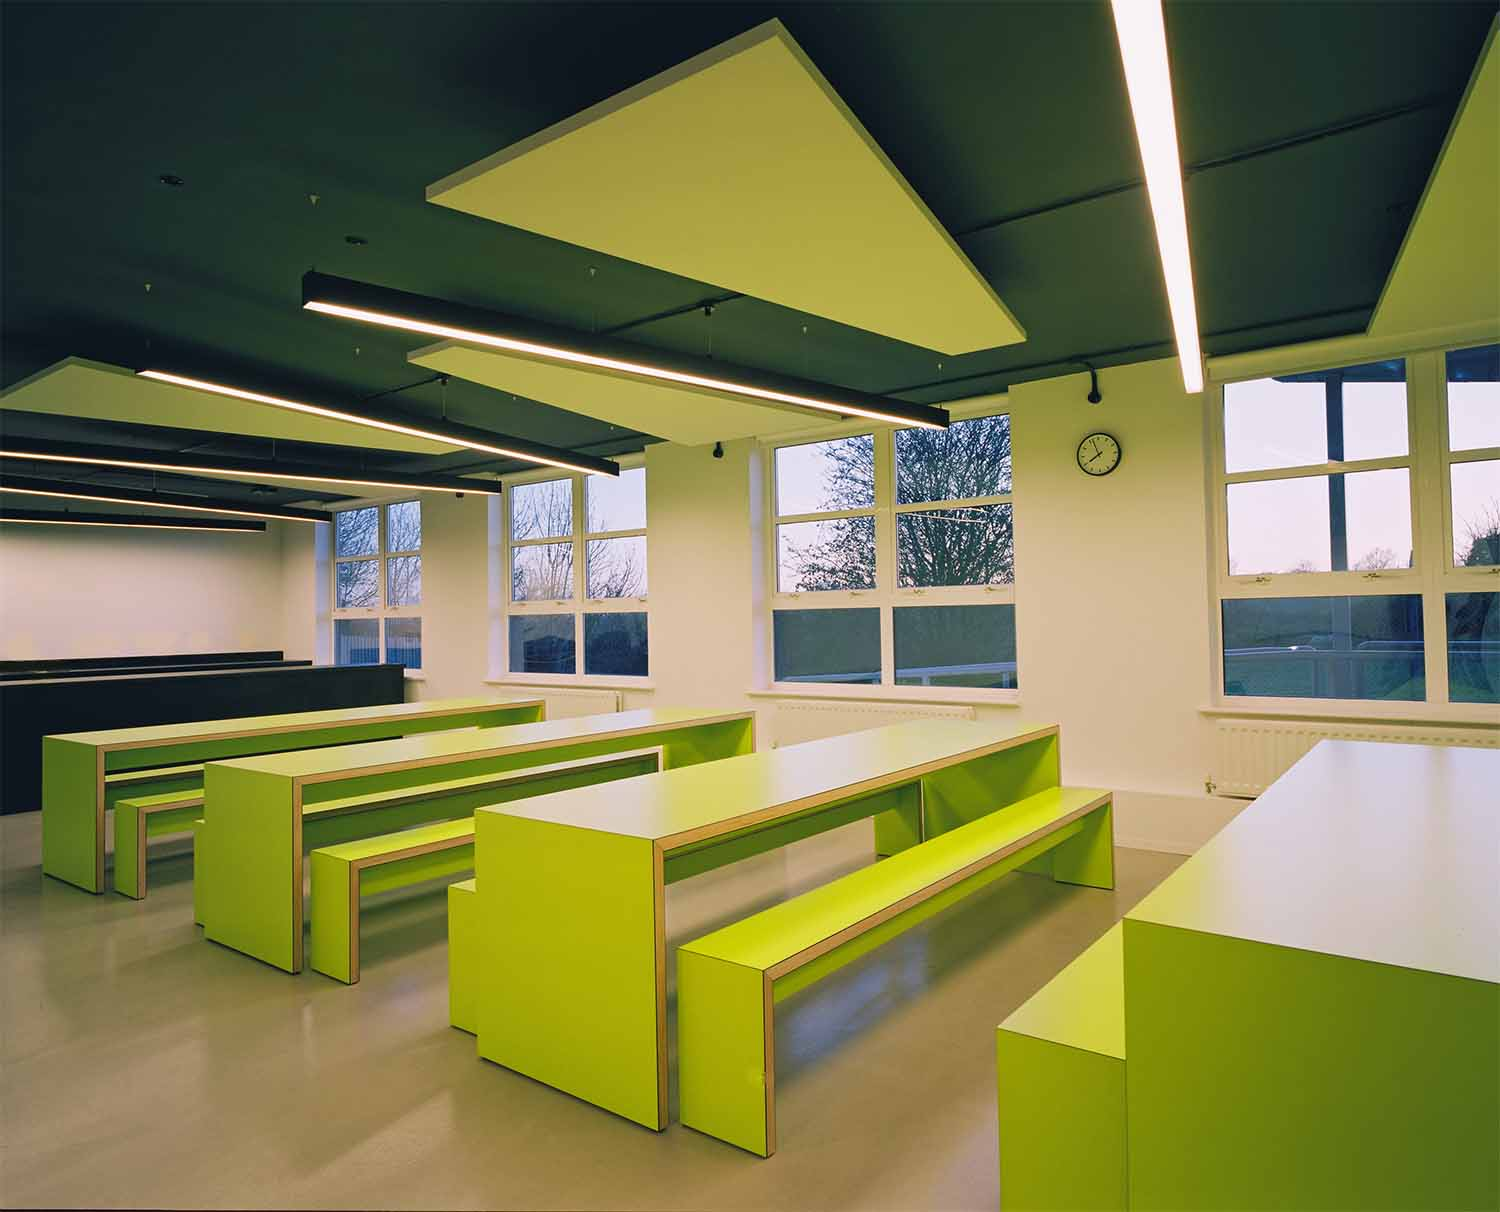 London Eltham_School_Cafeteria_05